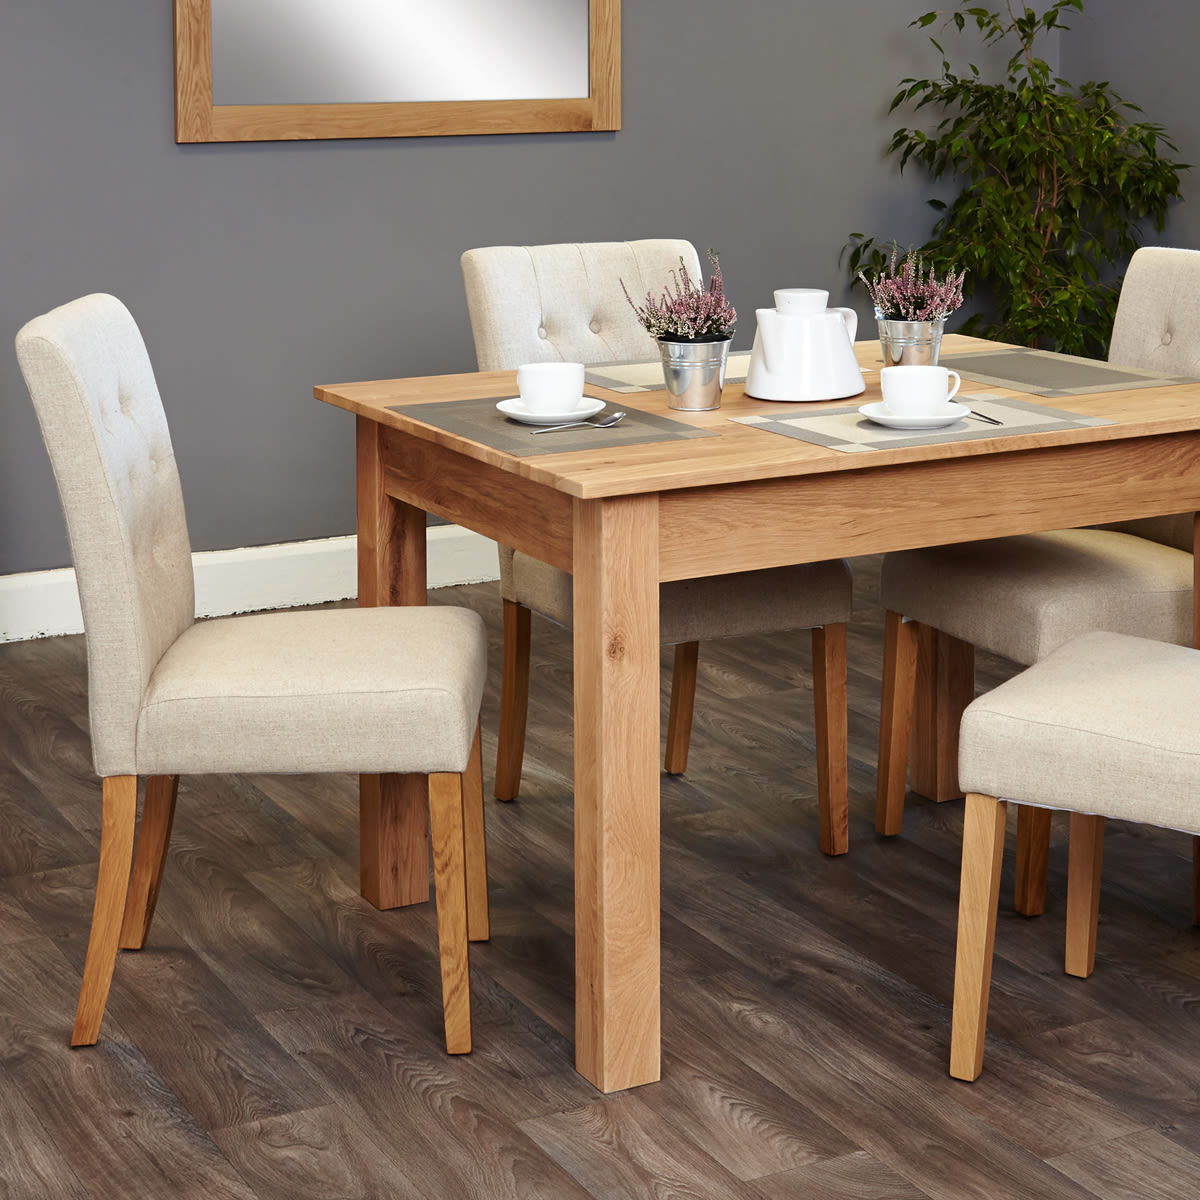 Mobel Oak Four Seat Table And Cream Chairs Was 163 759 00 Now